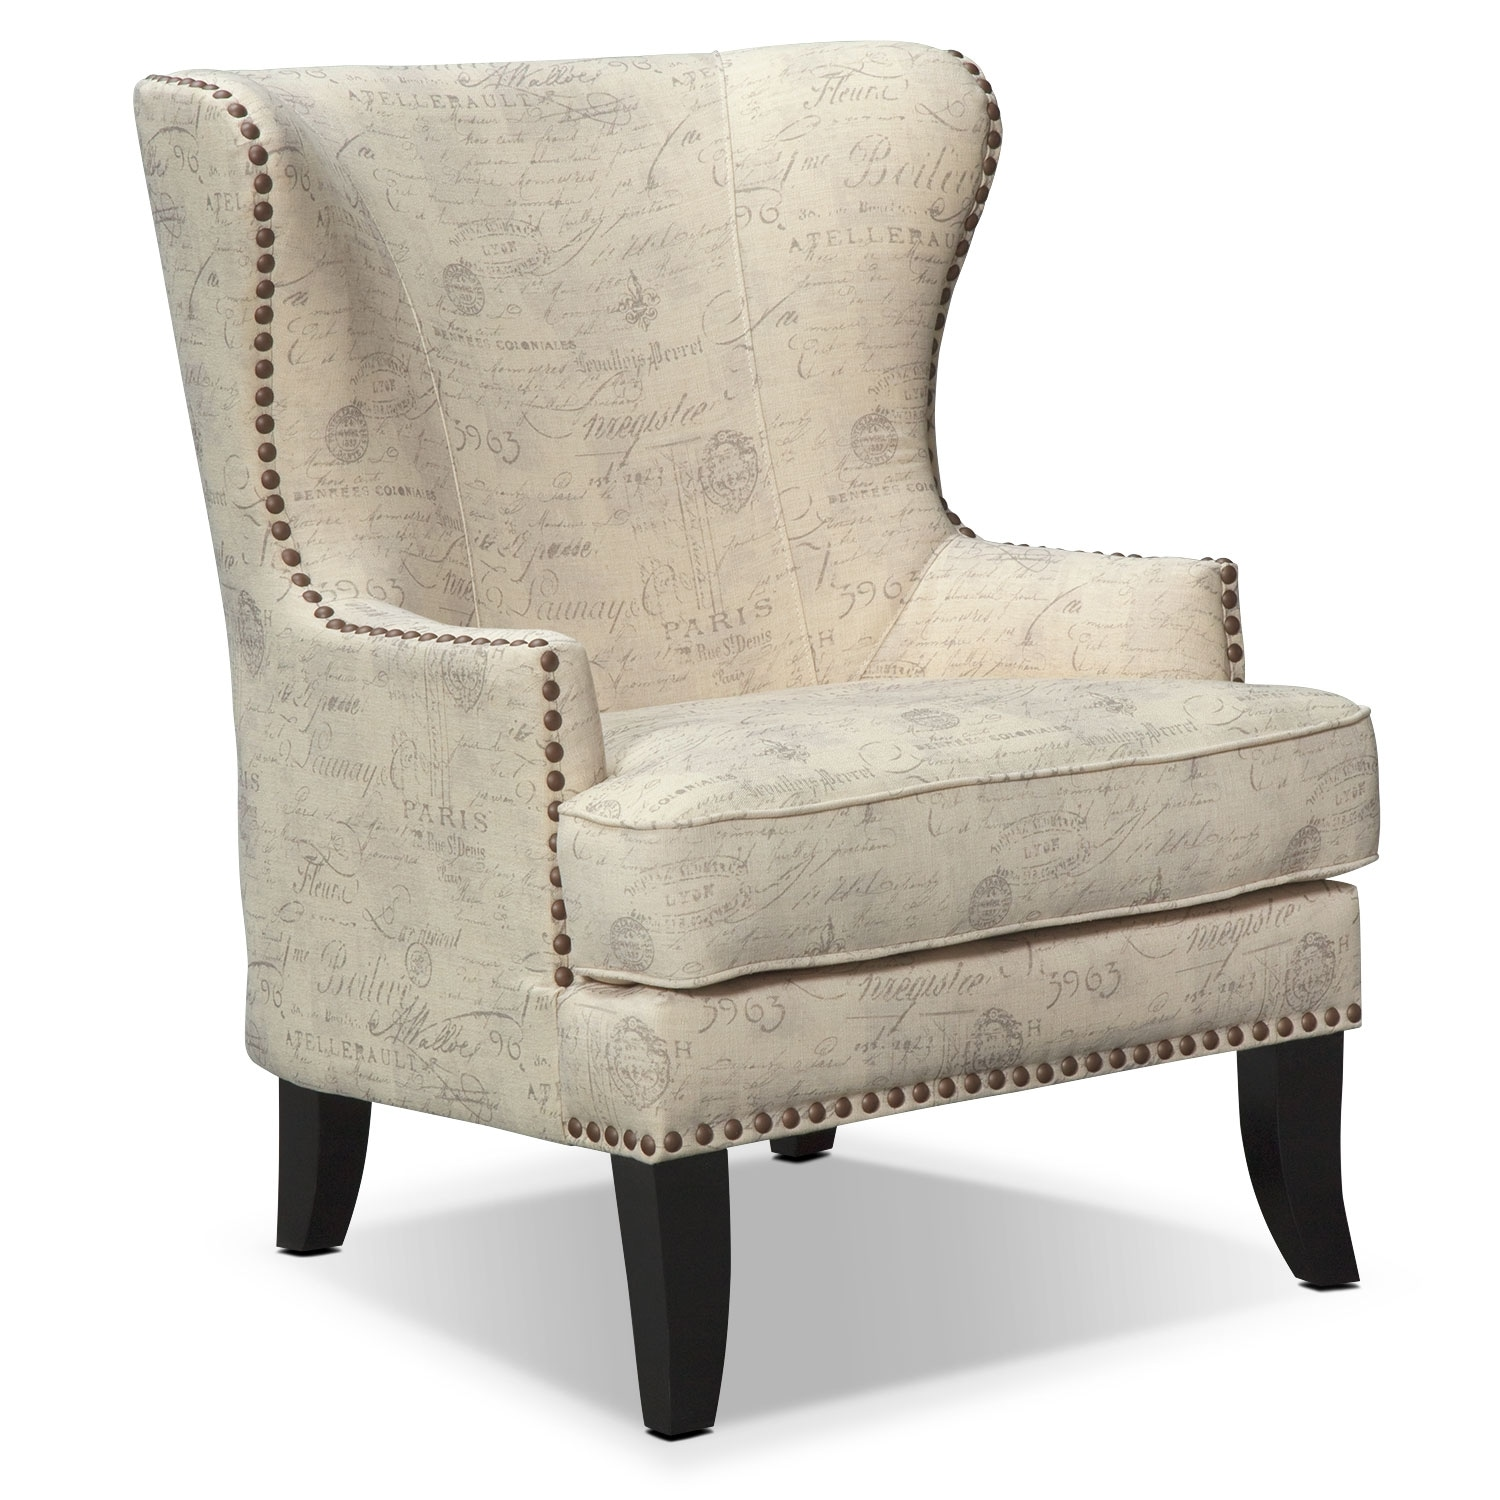 Marseille accent chair cream and black american for Occasional furniture